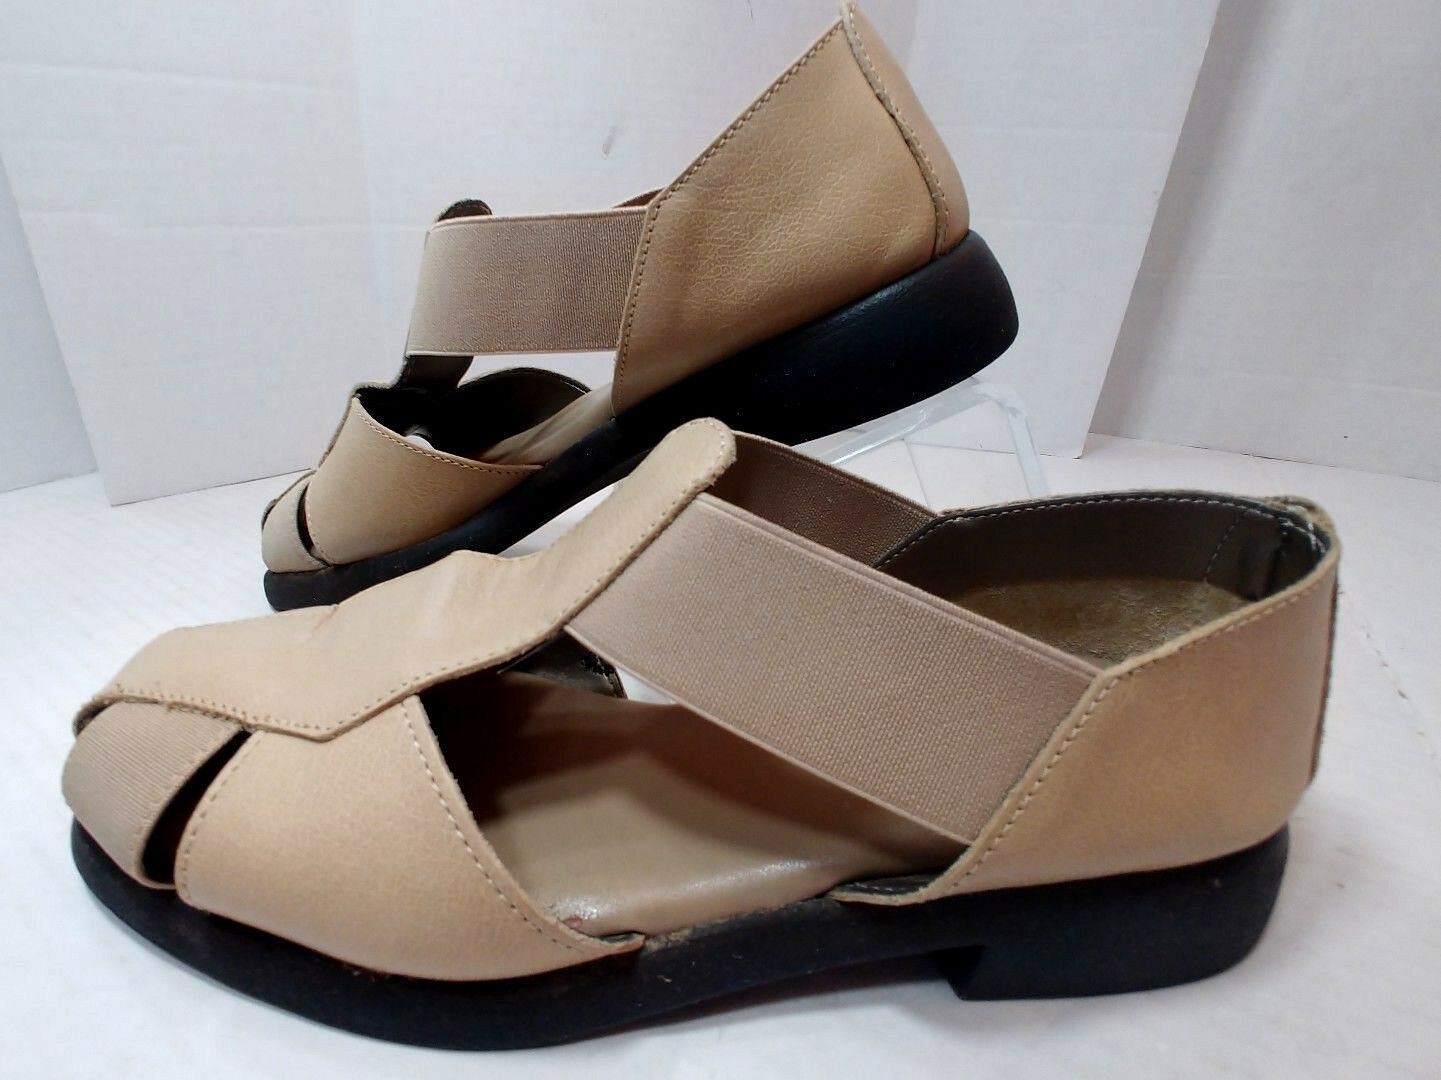 Aerosoles Beige Leather Casual shoes Flats Sporty T Sandals Slip On Womens 5.5M